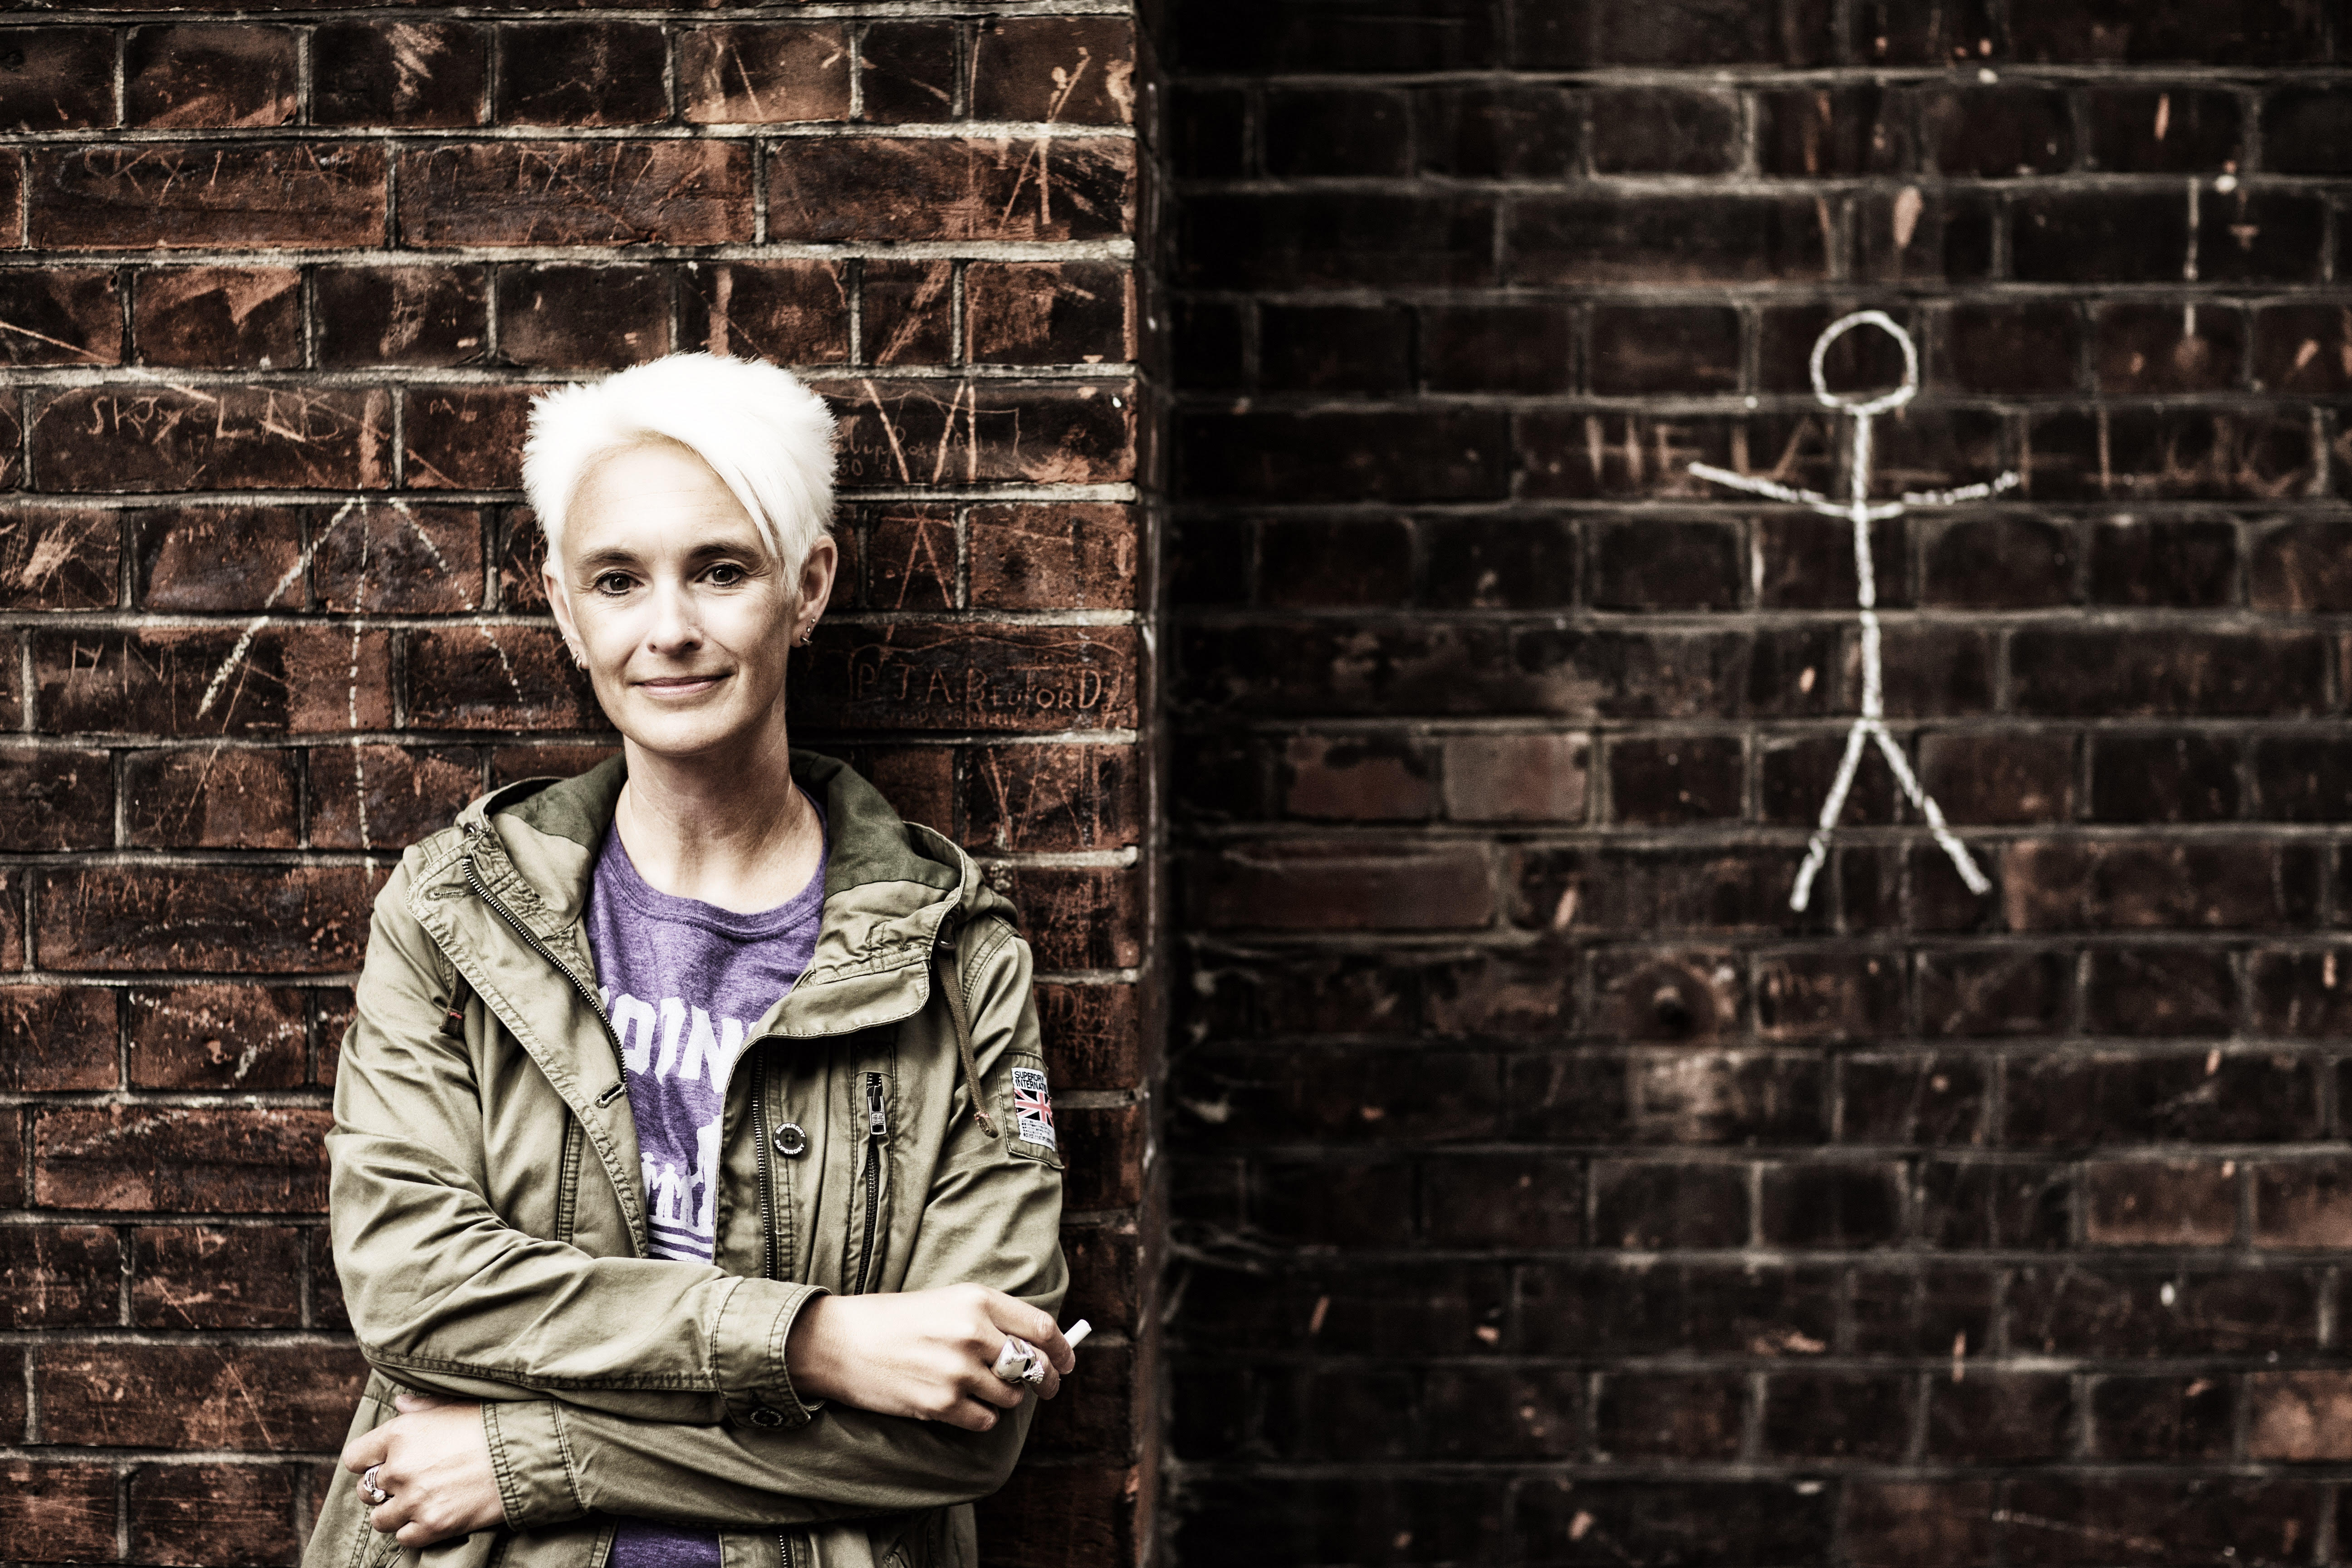 A picture of the interviewee in front of a wall with a man drawn in chalk on it